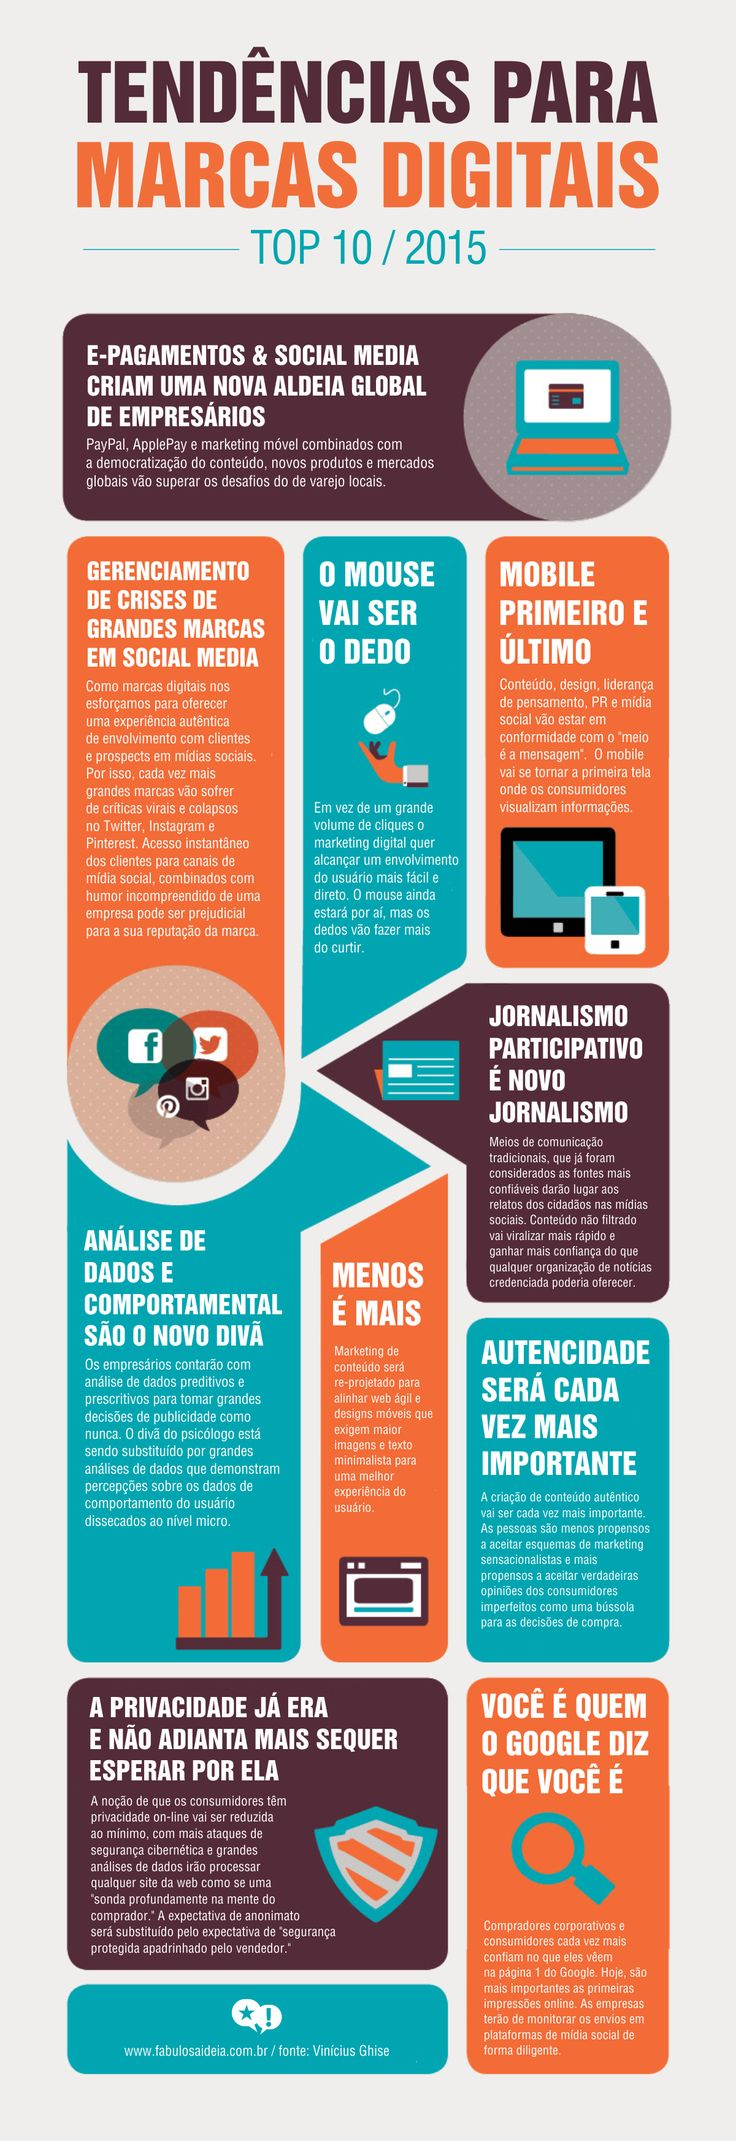 Tendências do Marketing Digital para 2015 #modernistablog #brasil…